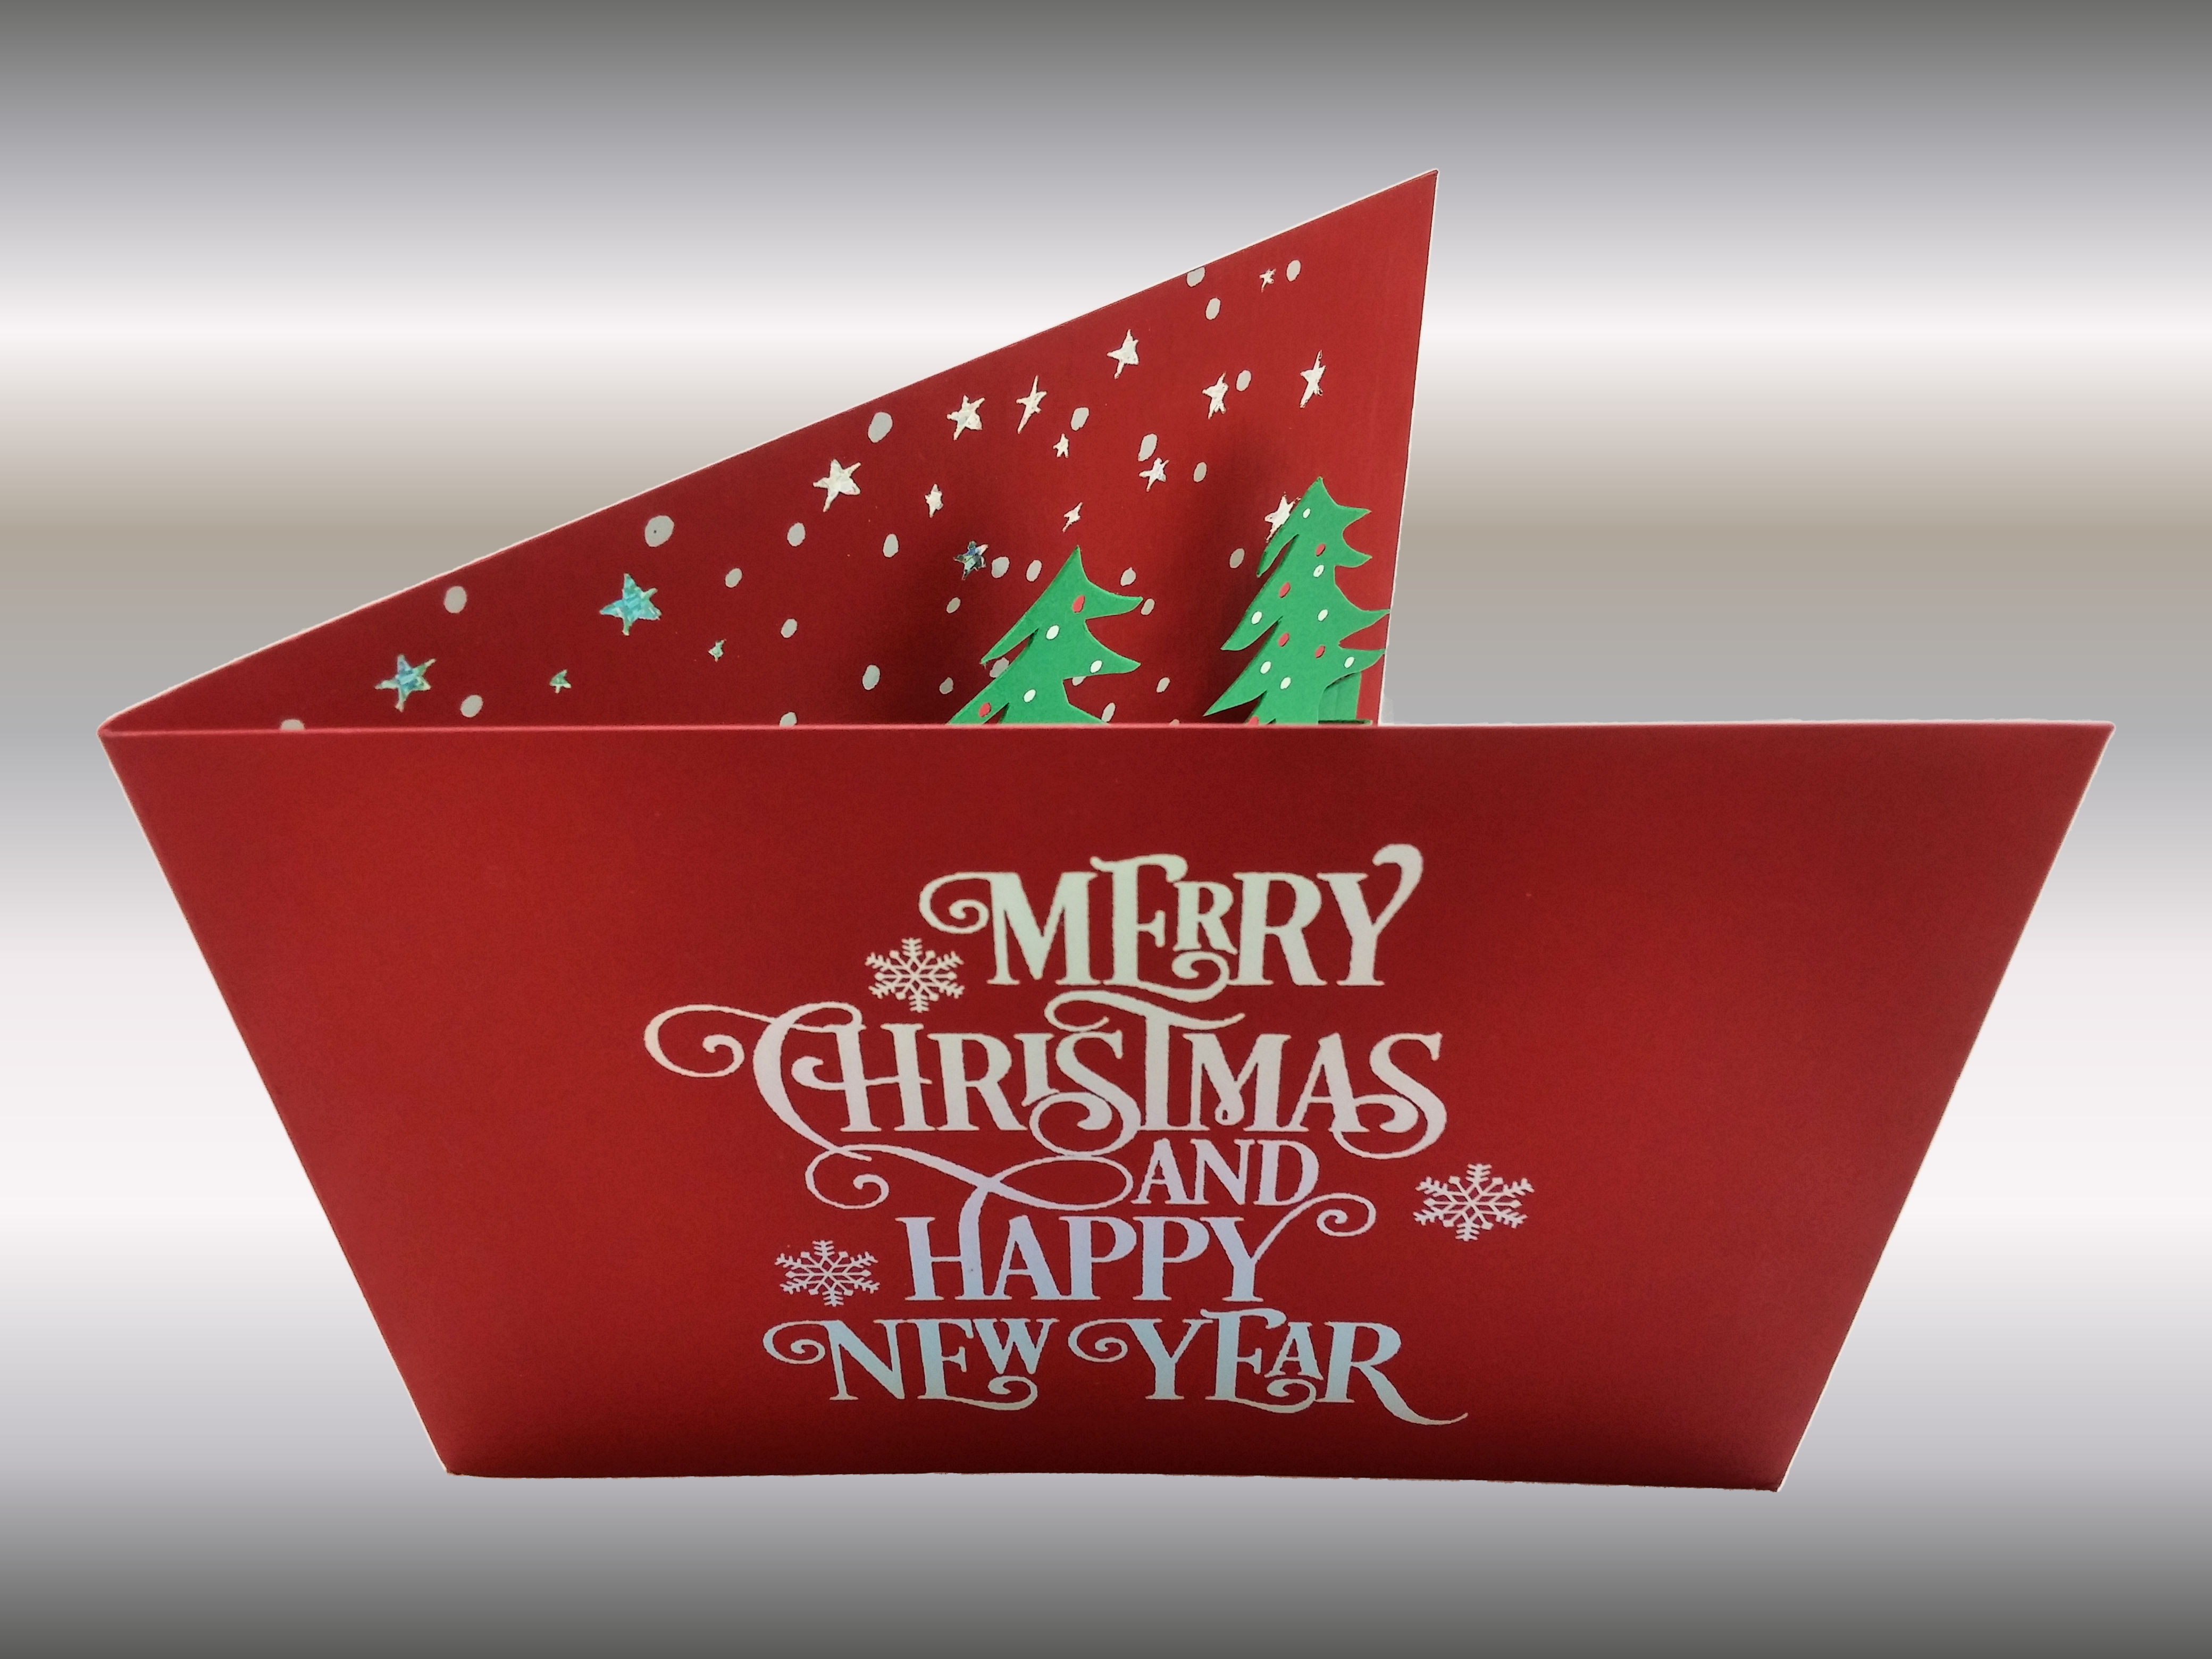 3 Colors Foilstamped Diecut Christmas Card Front